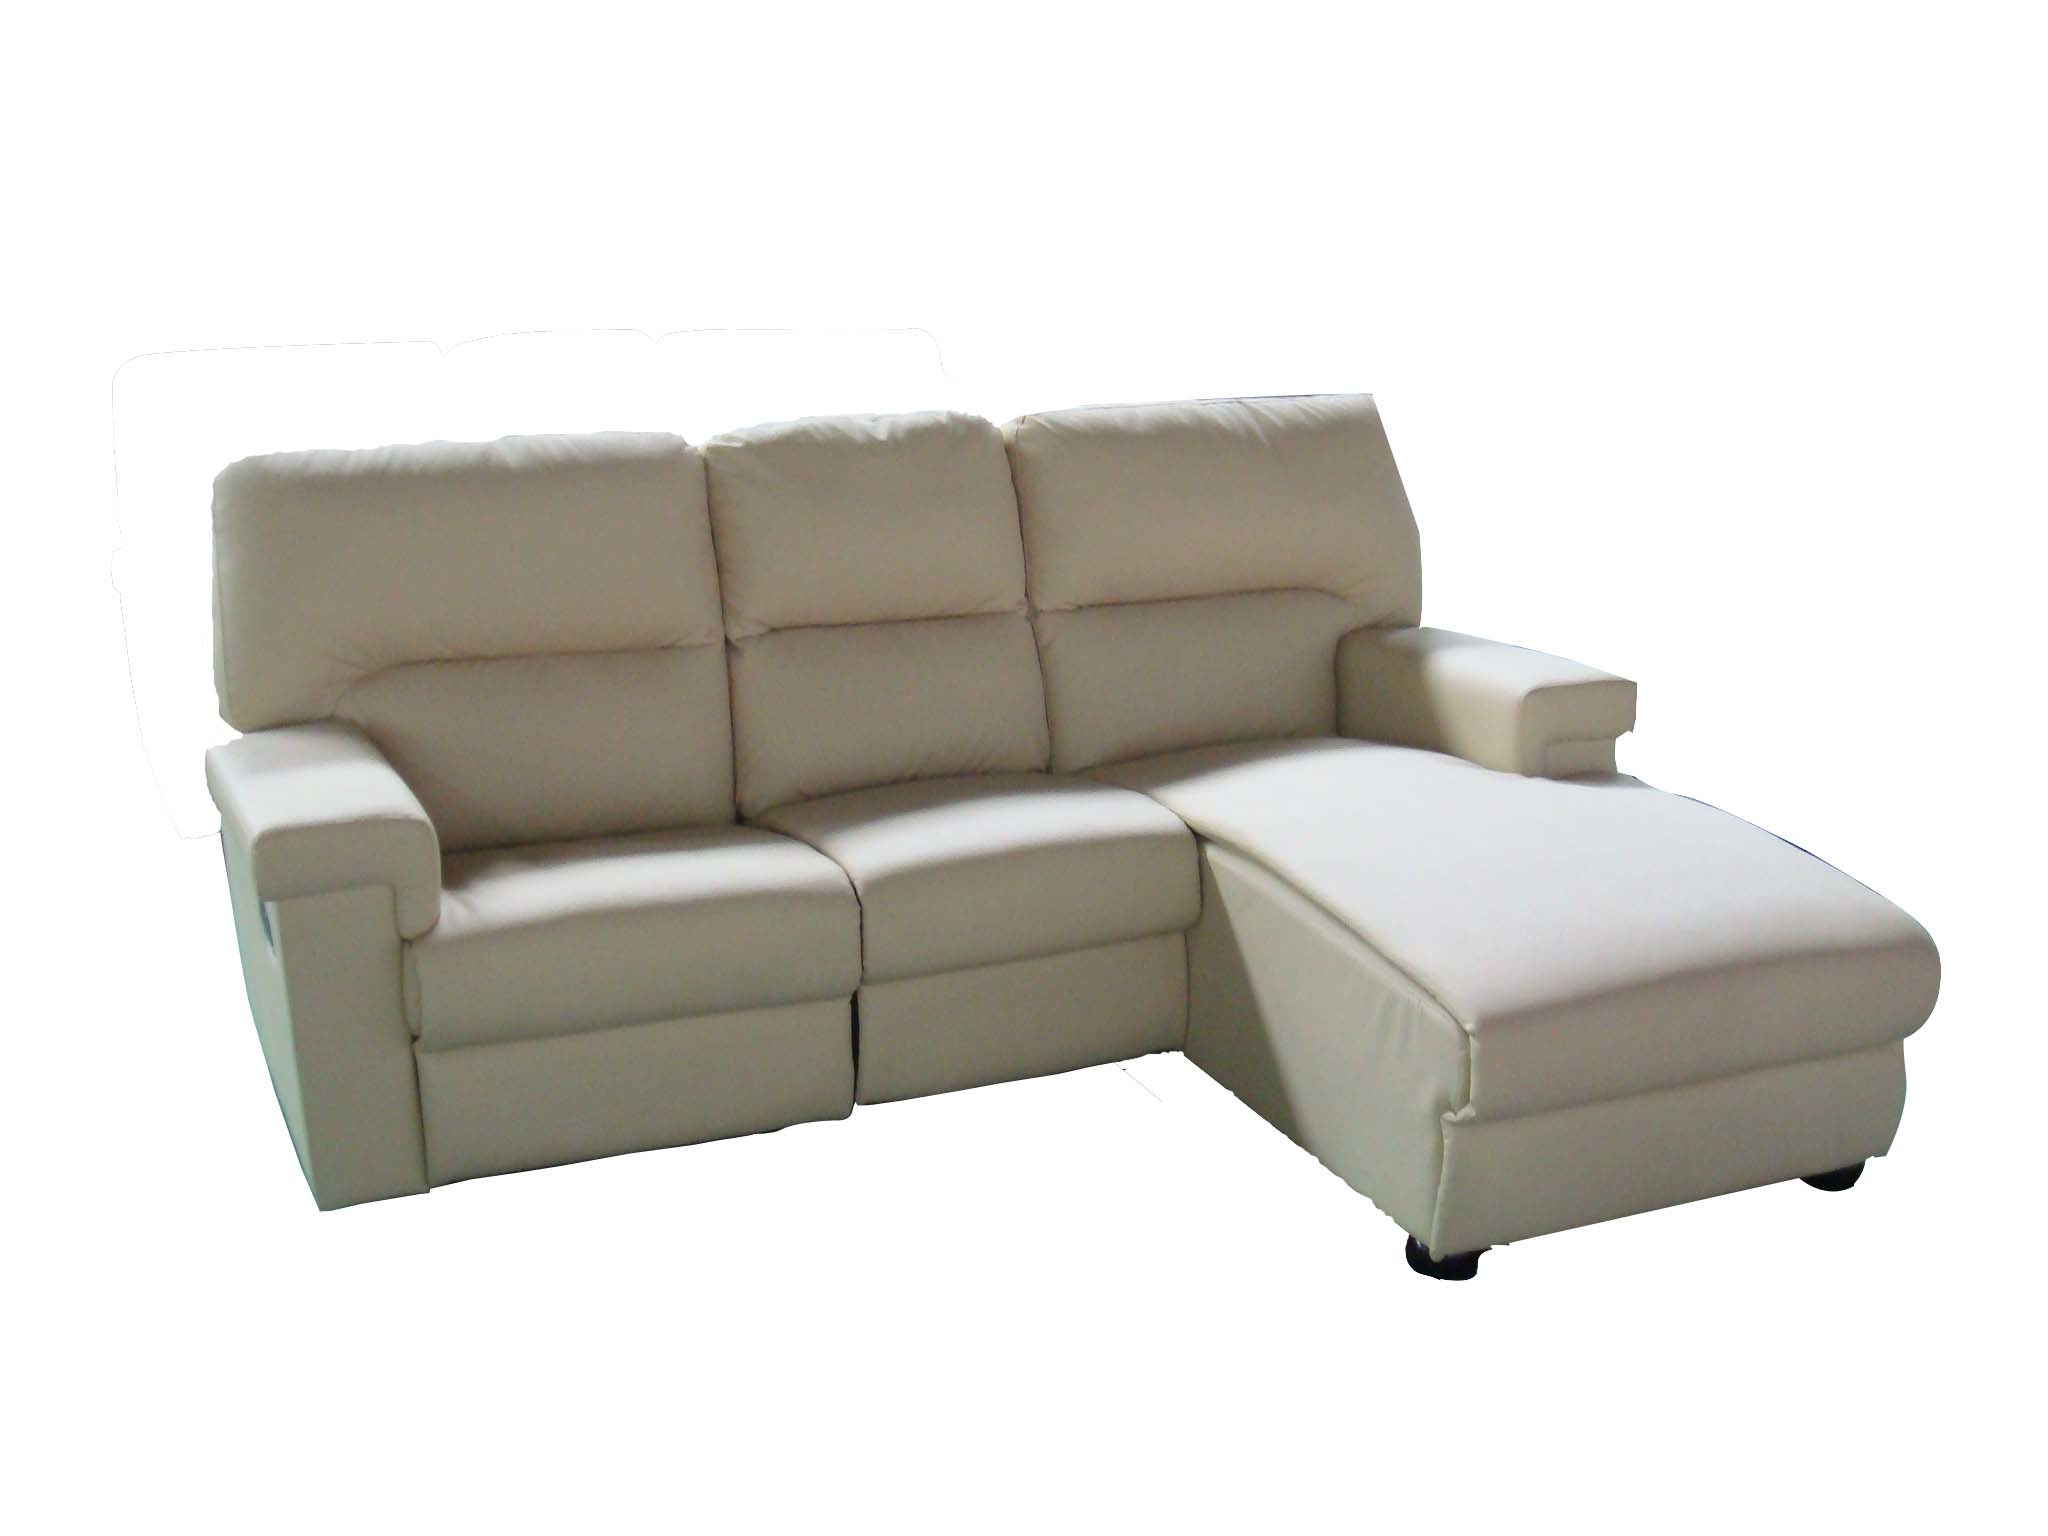 Designer sectional sofa sofa design for Design sofa